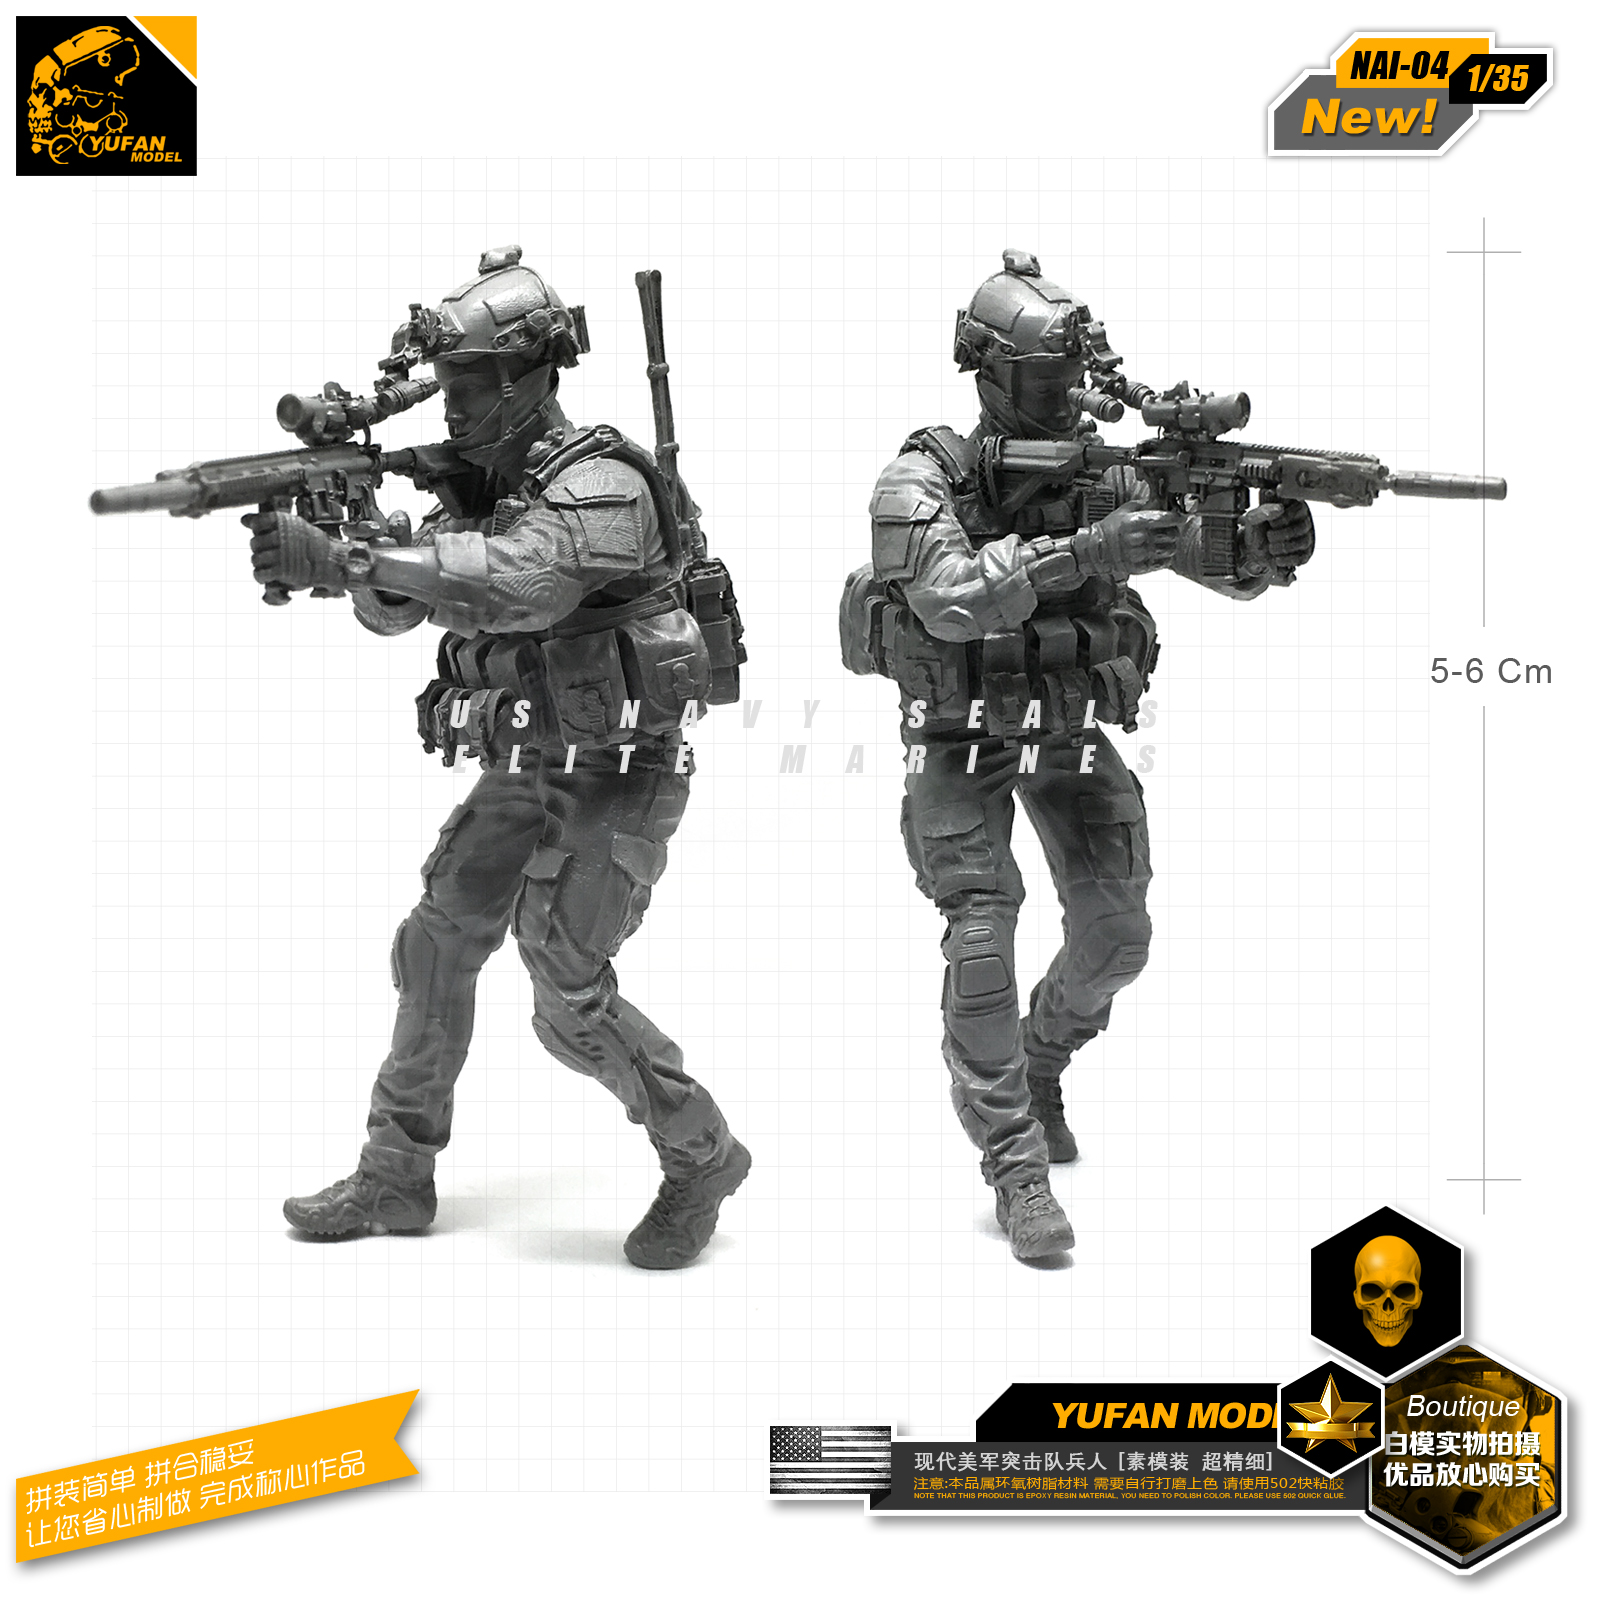 Yufan Model 1/35 Figure Model Kits Modern American Commando Resin Soldier Model Unmounted Accessories Nai-04